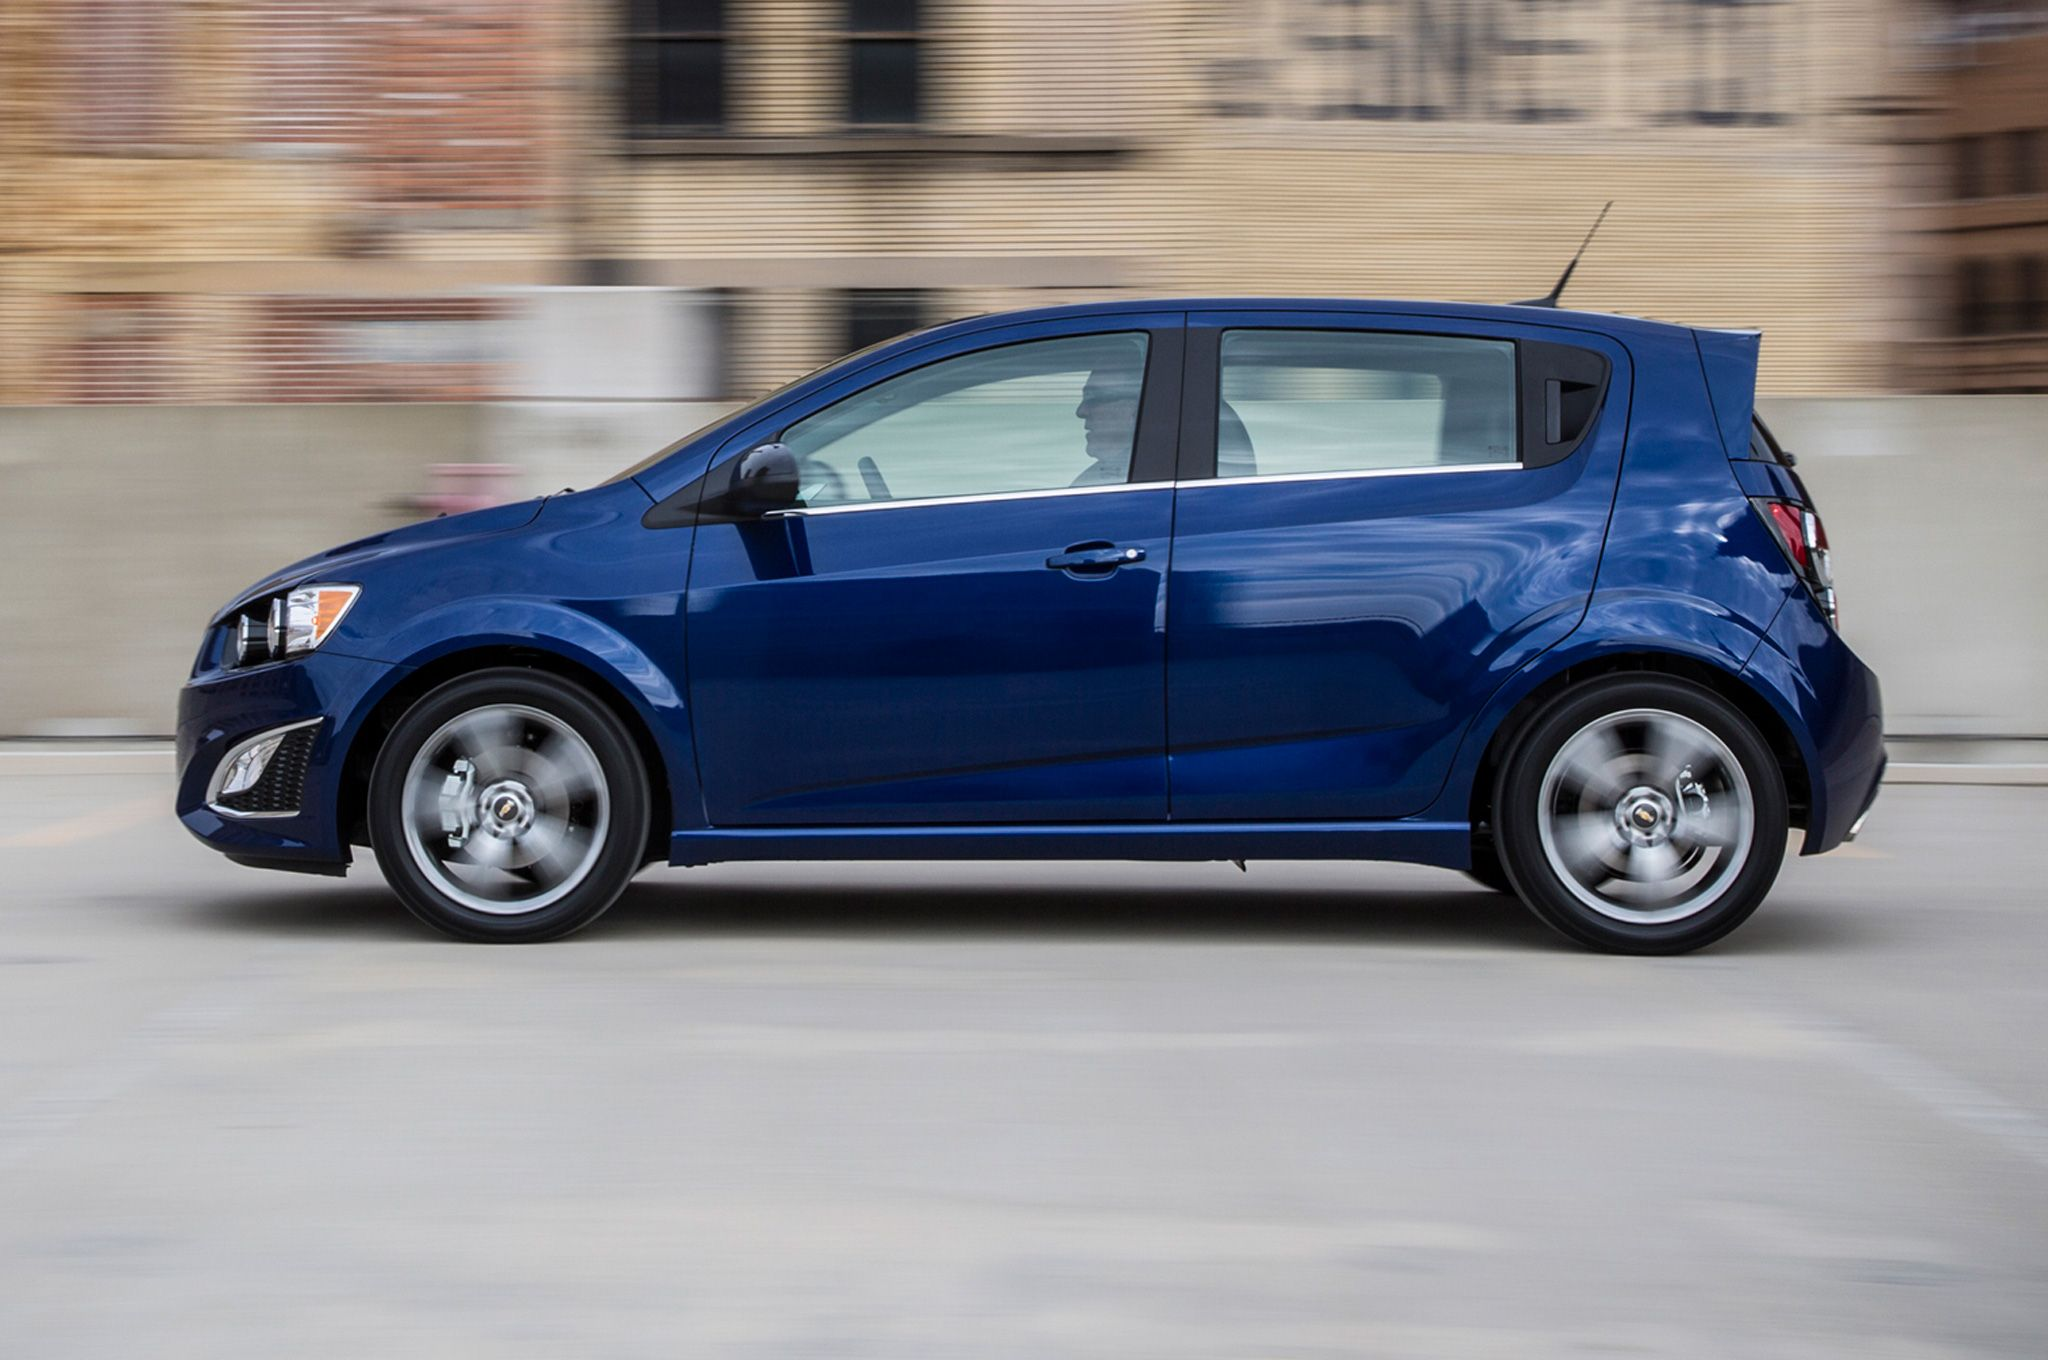 Gm Sales Rise 4 1 Percent In March Autos